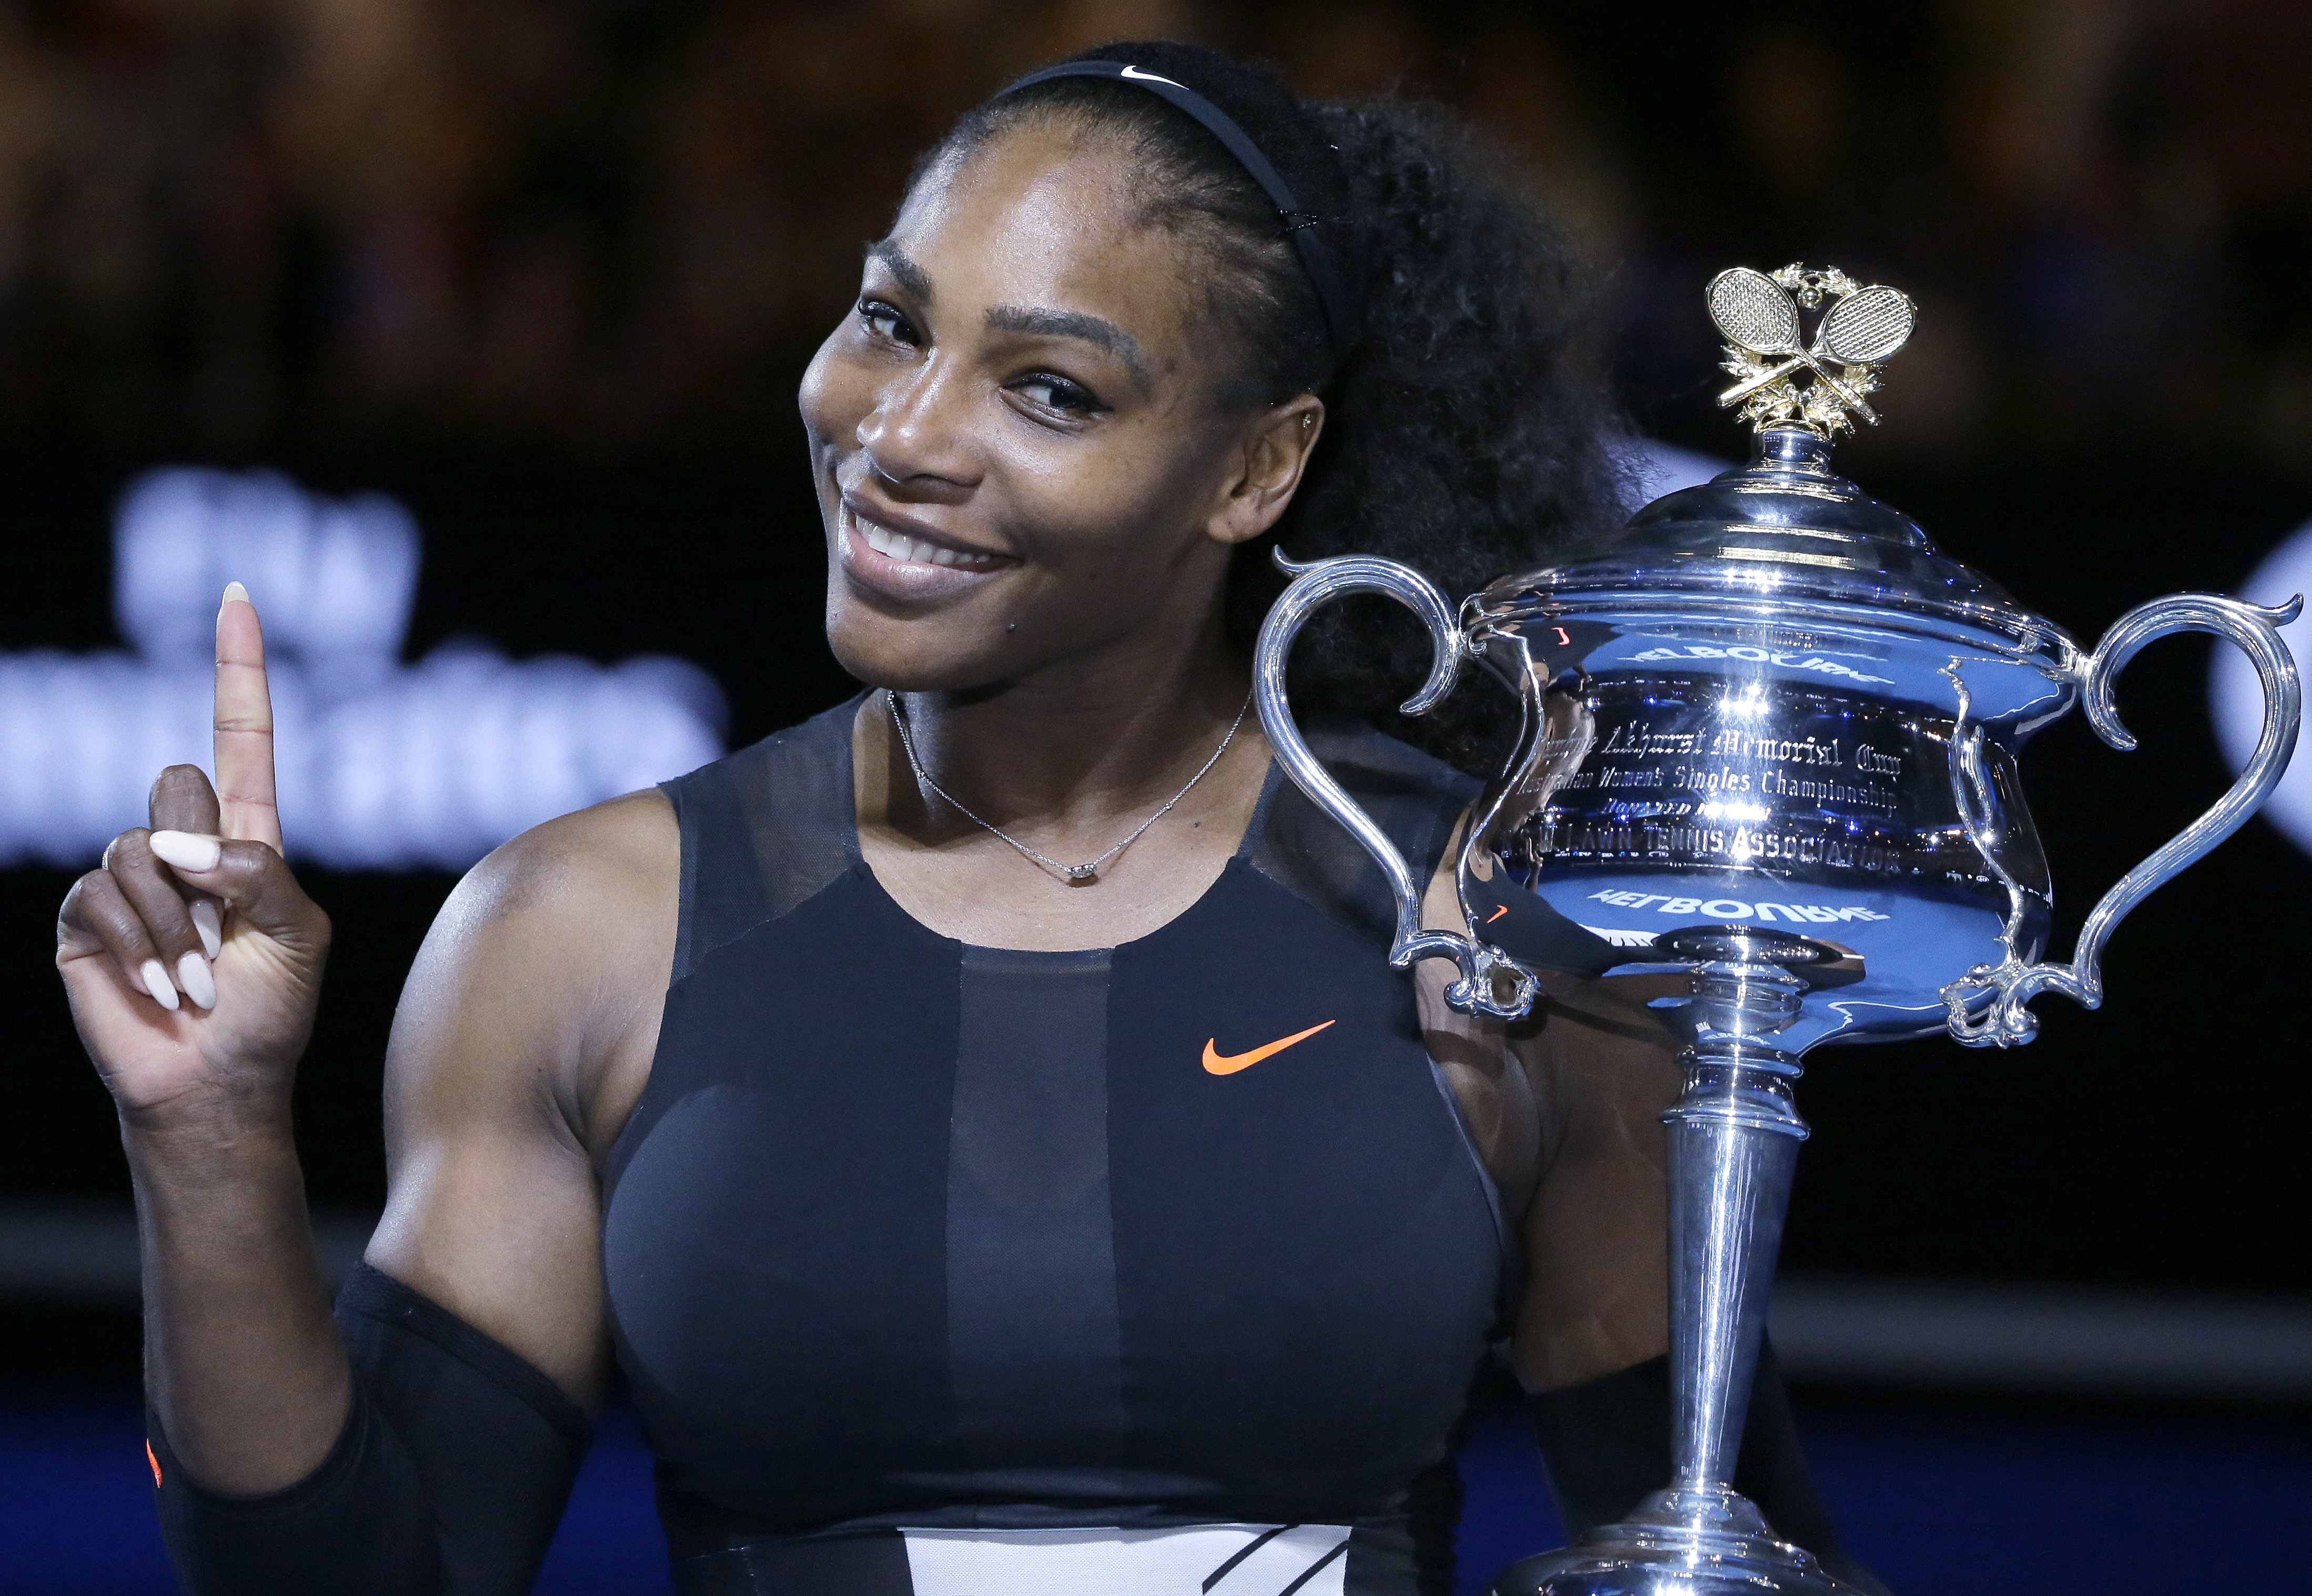 FILE - In this Jan. 28, 2017, file photo, Serena Williams holds up a finger and her trophy after defeating her sister, Venus, in the women's singles final at the Australian Open tennis championships in Melbourne, Australia. A spokeswoman for Williams says